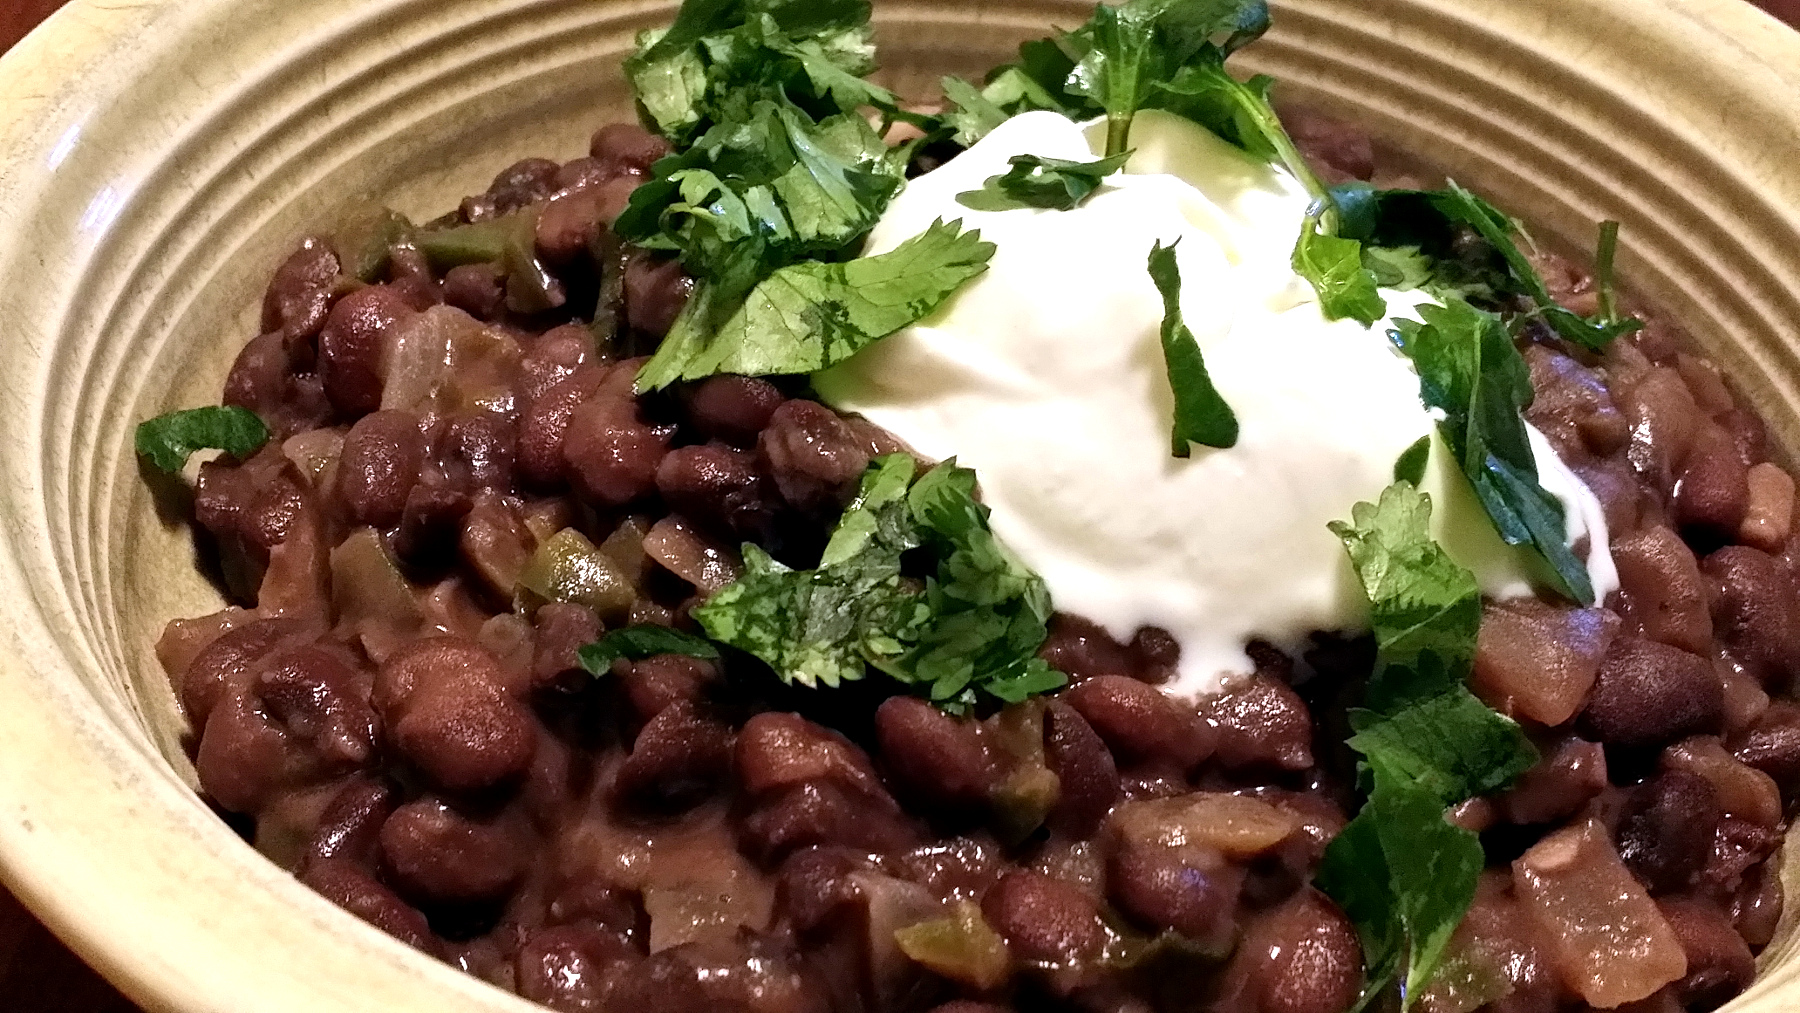 Not-Too-Spicy Black Beans   The Zero-Waste Chef